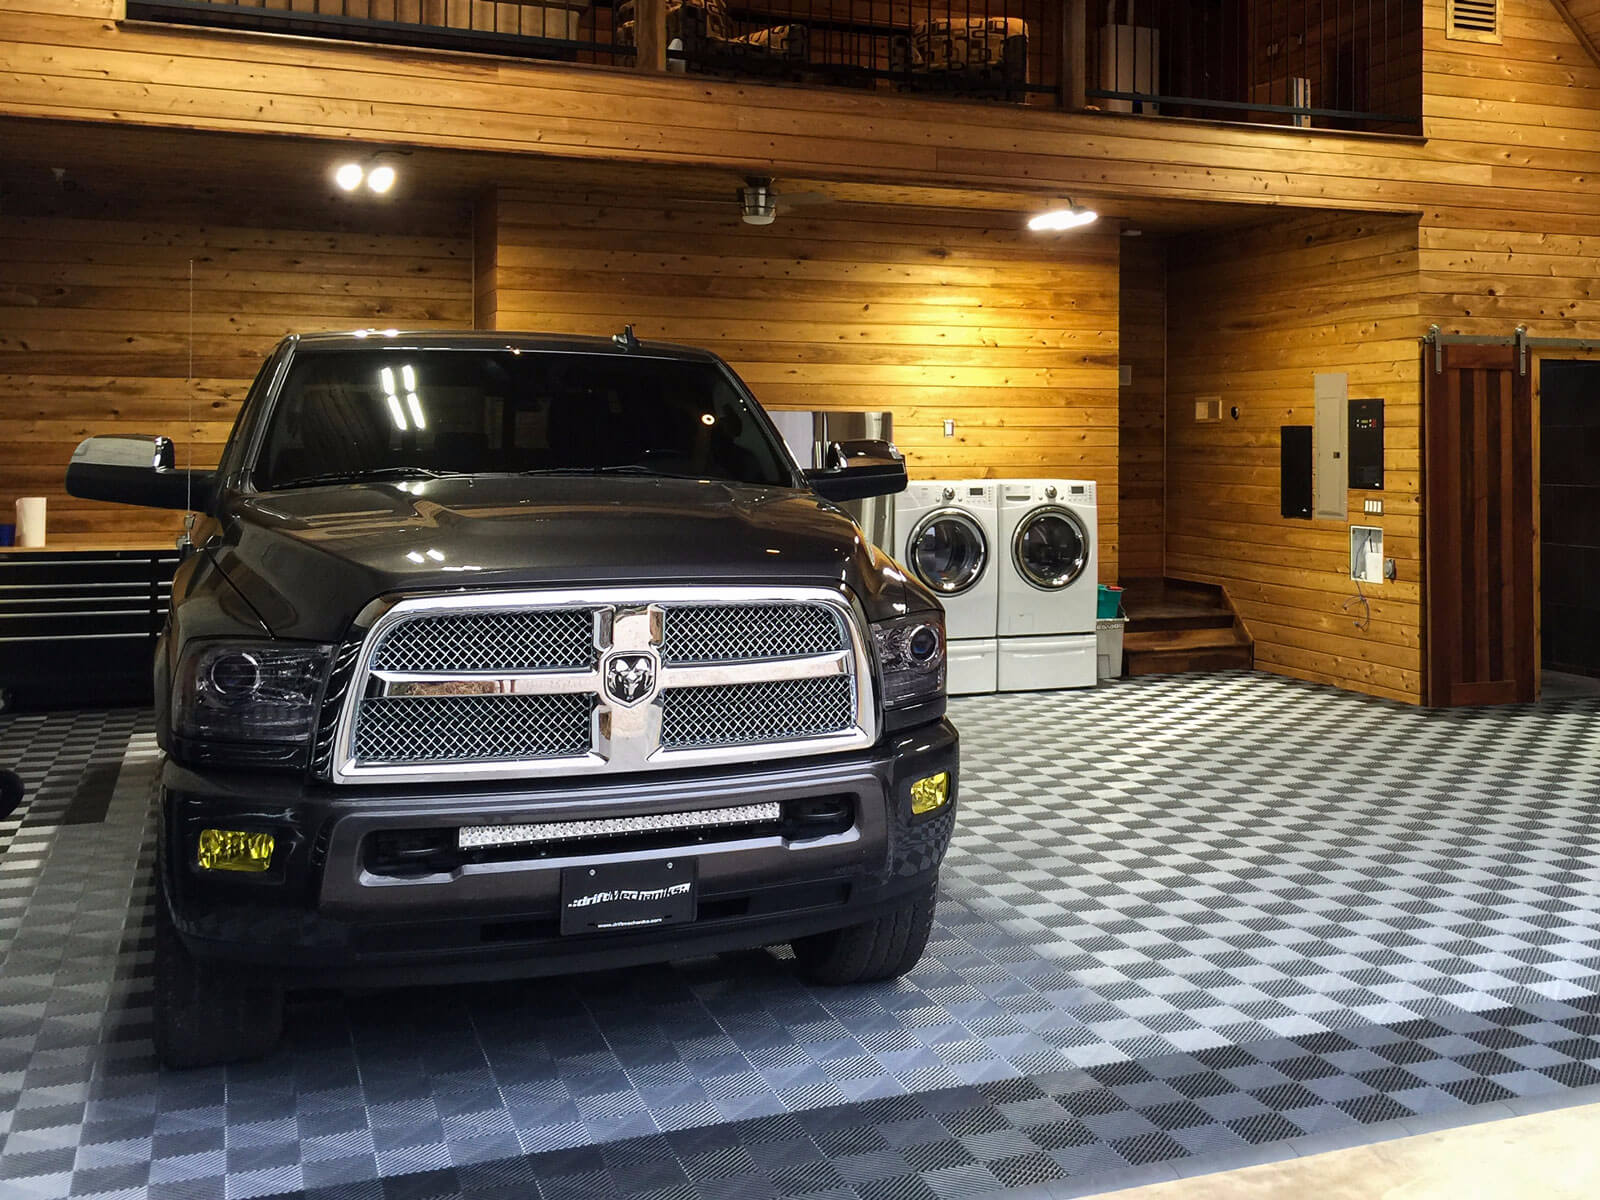 Dodge ram 3500 in a garage with Free-Flow